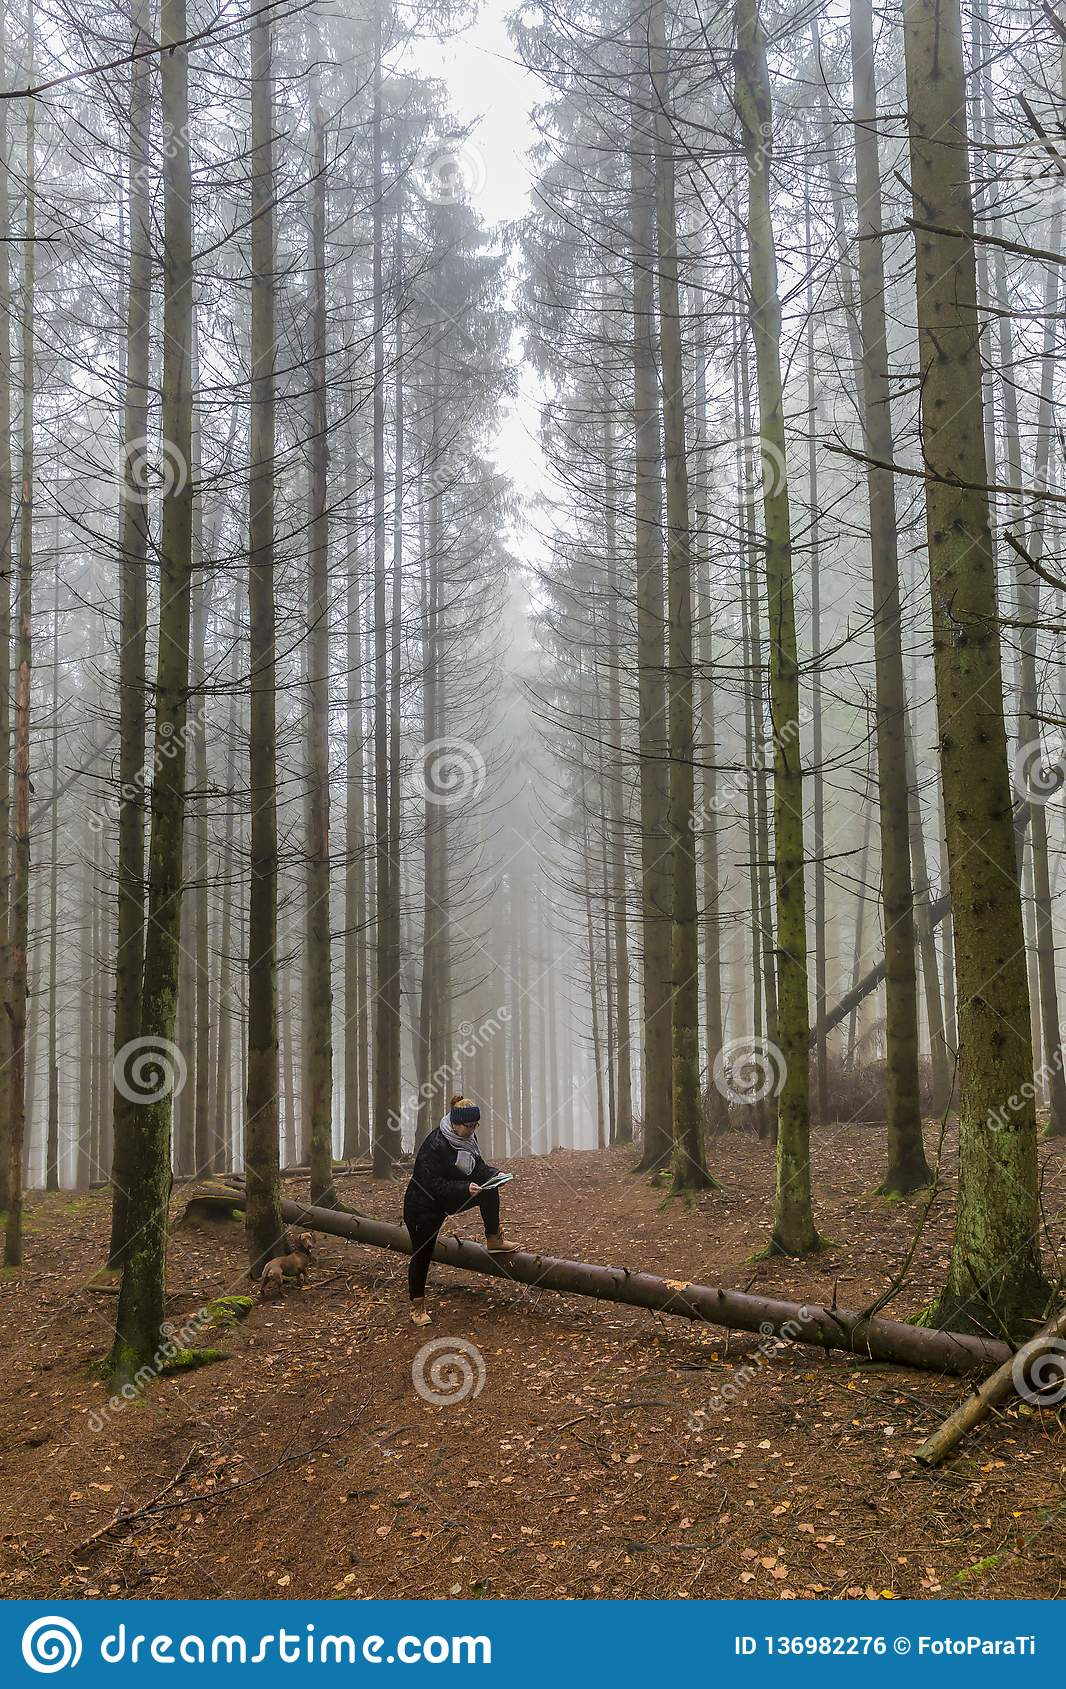 Image of a woman looking at a paper map resting on a trunk of a fallen tree among tall pine trees in the forest